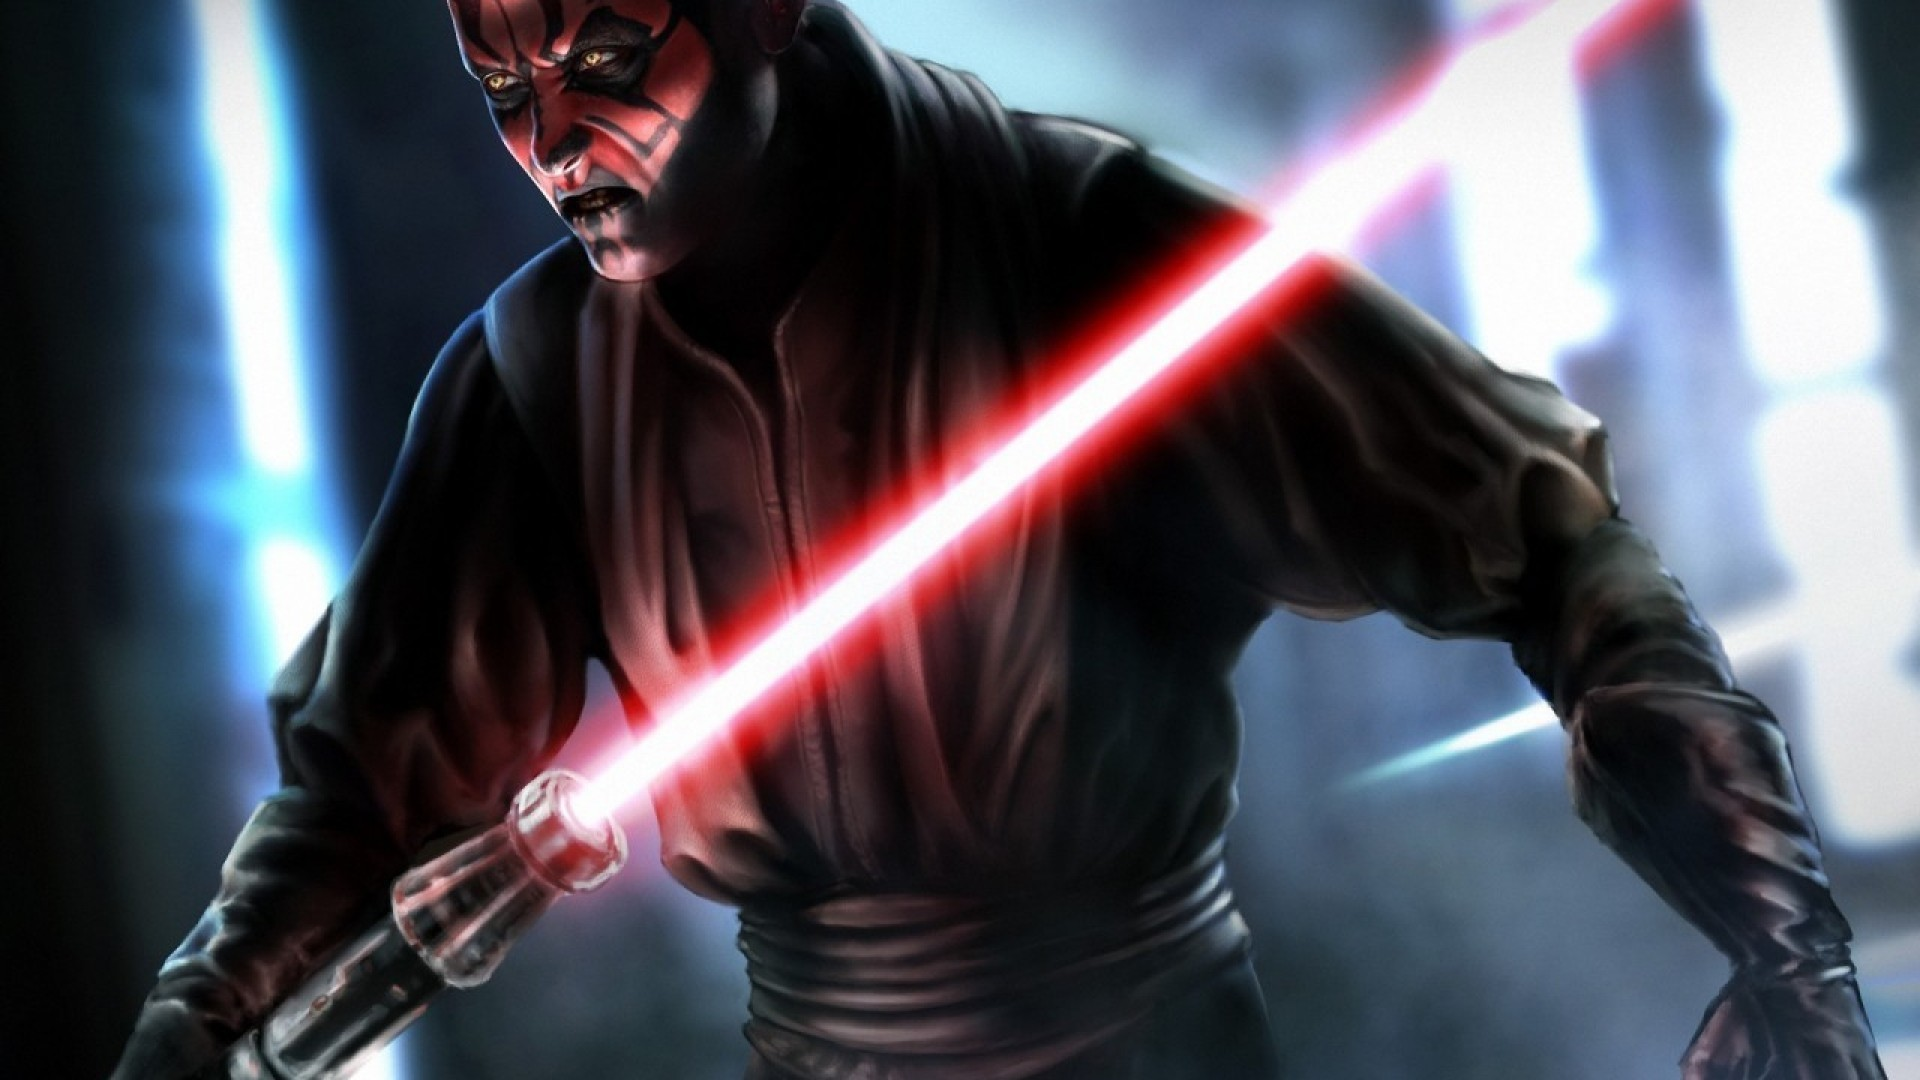 1920x1080 Darth Vader HD Wallpapers Backgrounds Wallpaper